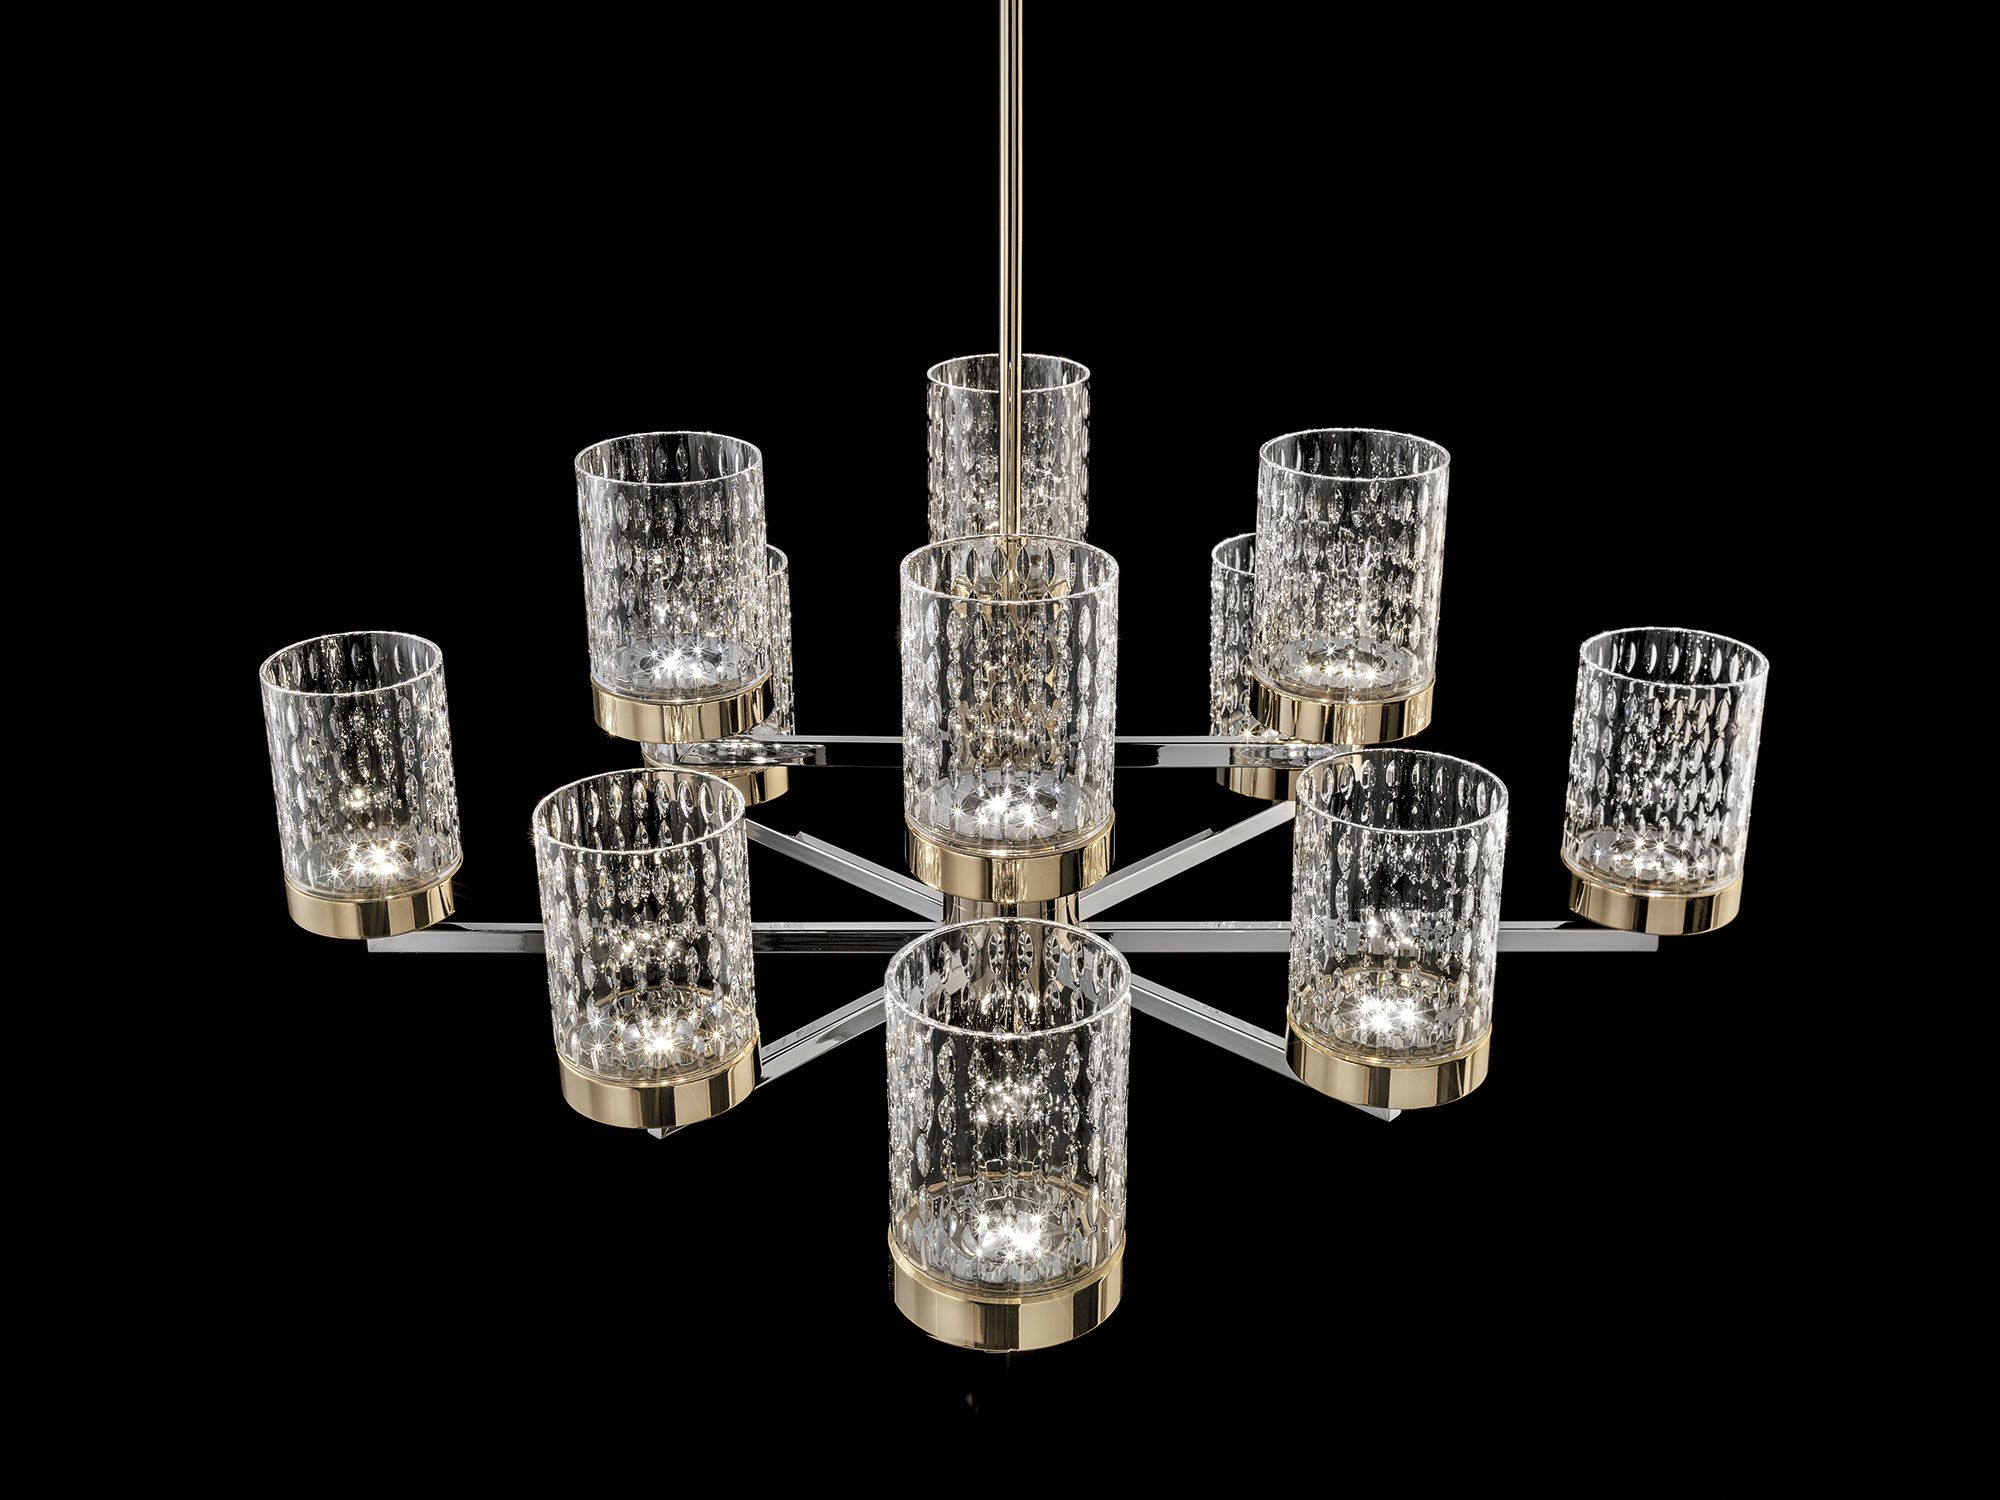 Quarzo chandelier in chrome and light gold metal structure with